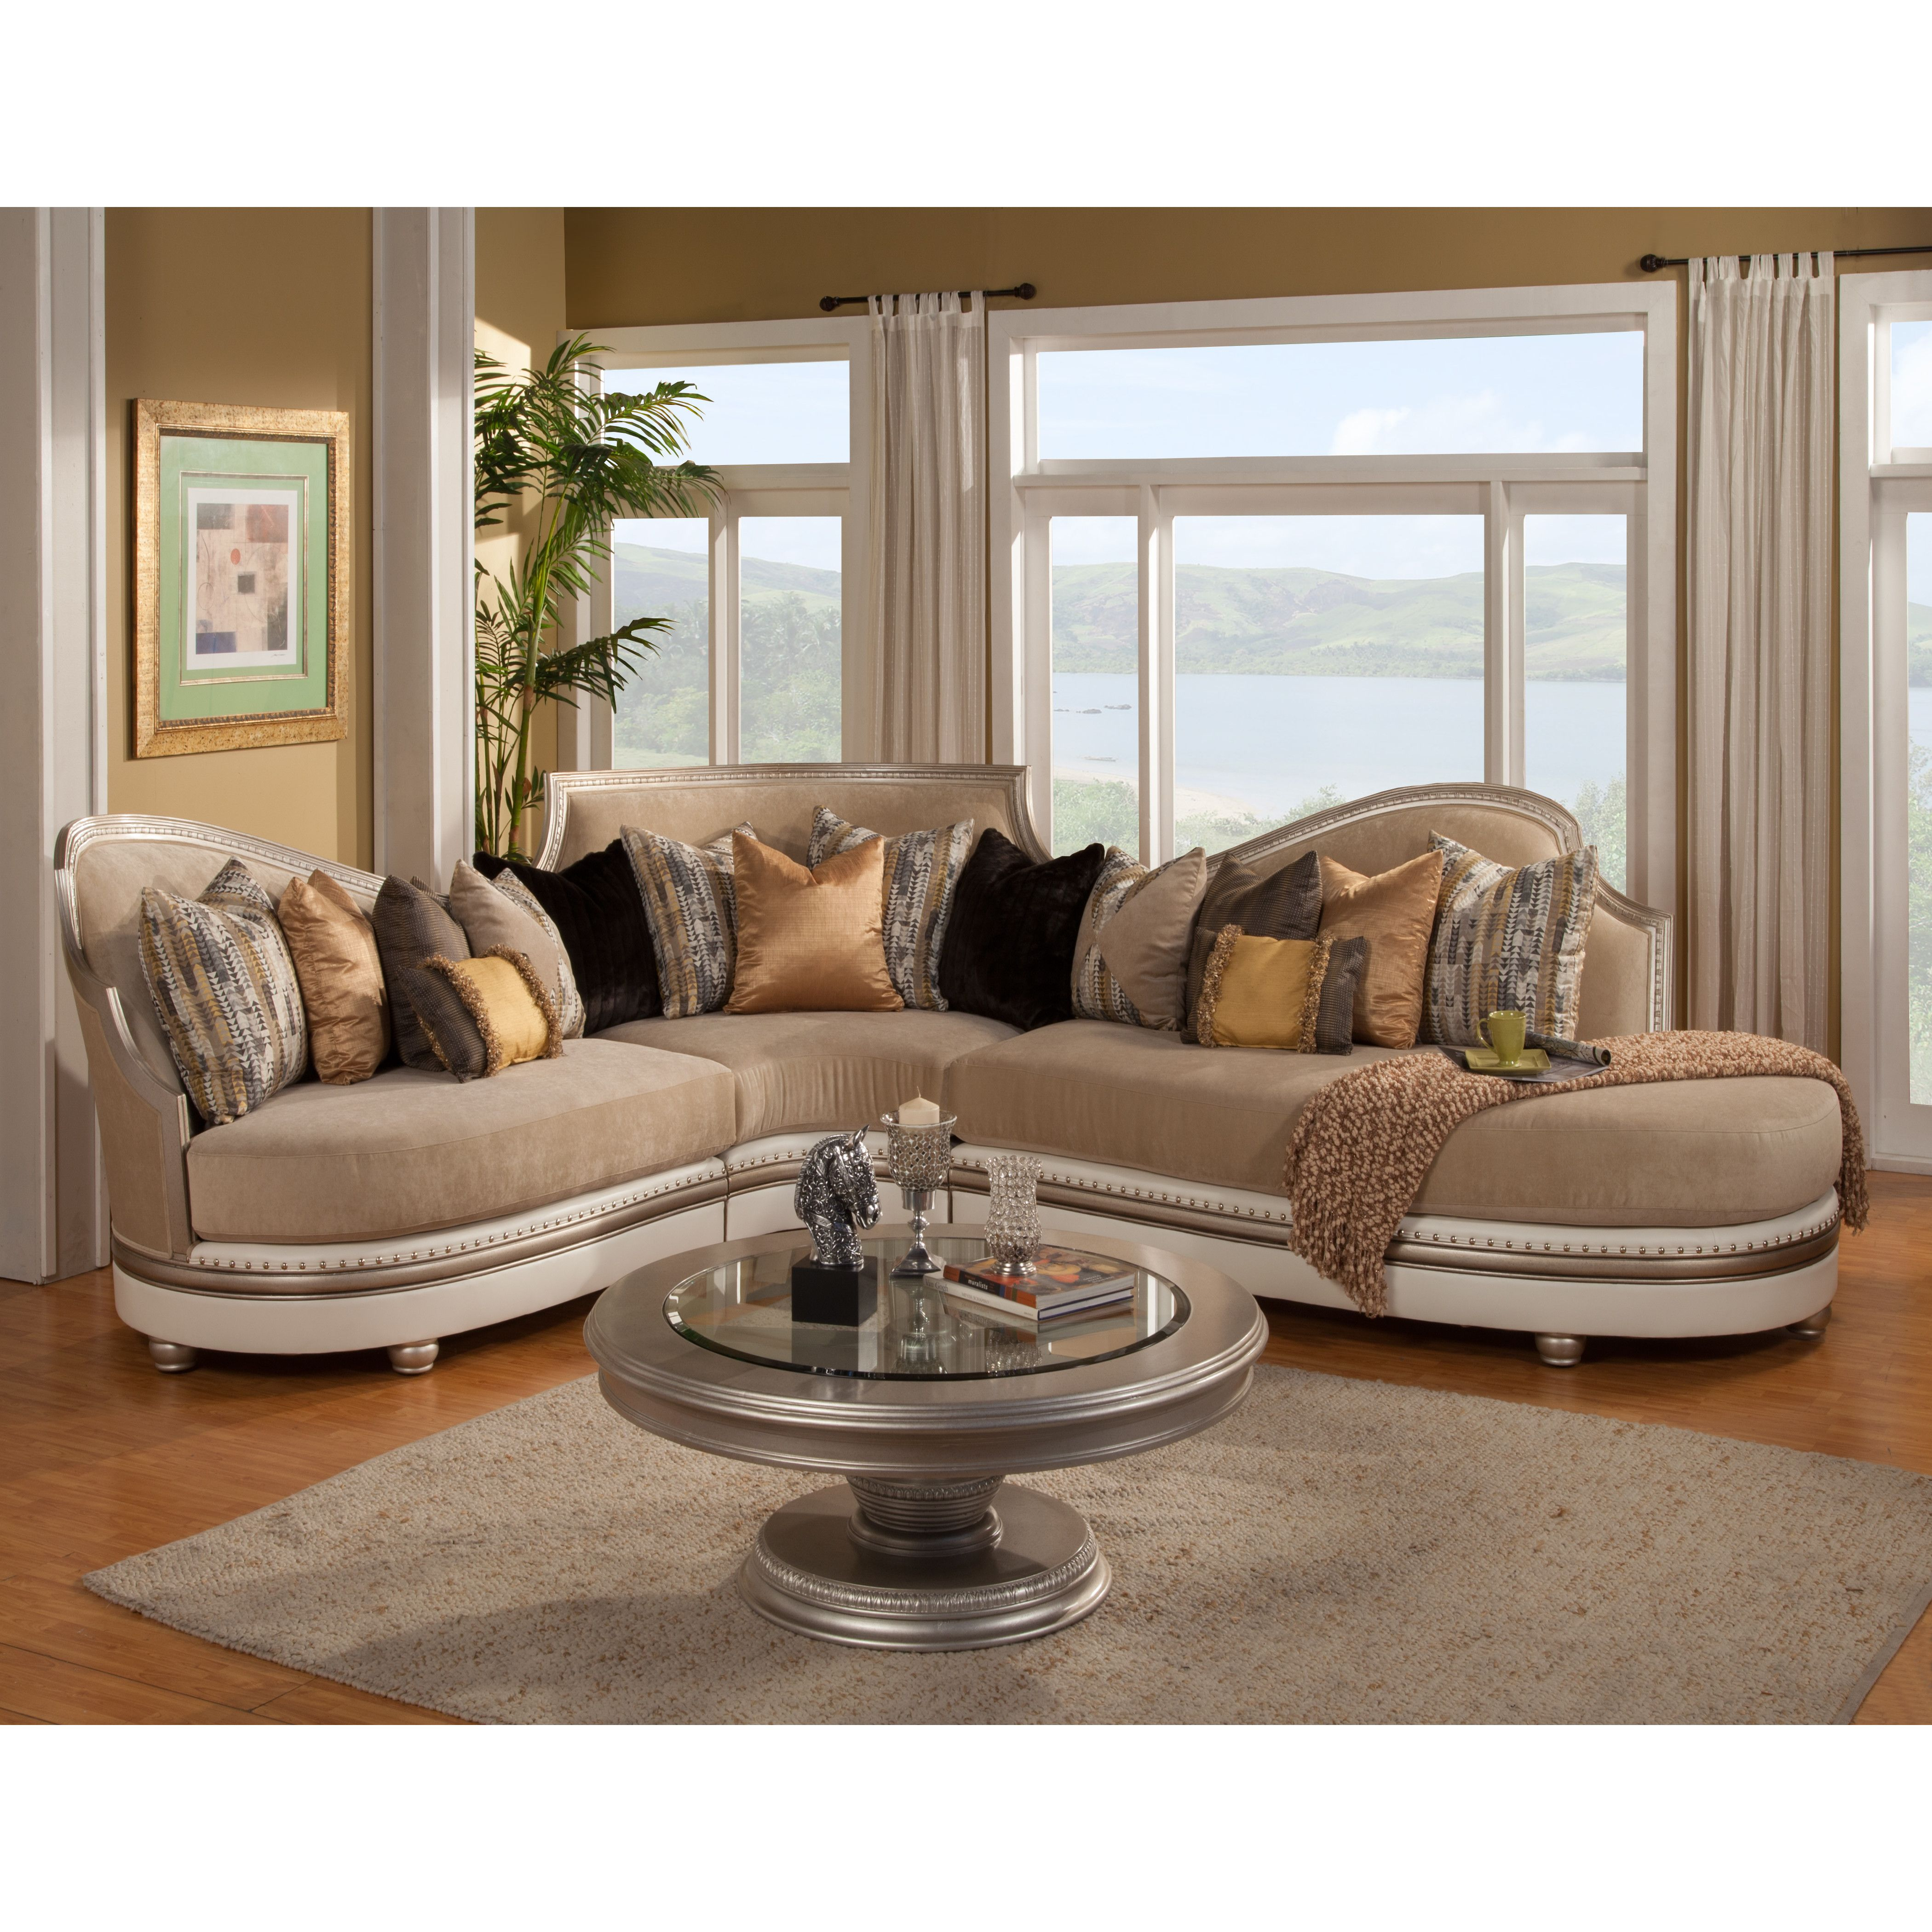 Shop Wayfair For Sectional Sofas To Match Every Style And Budget Enjoy Free Stylish Living Room Sectional Sofa Couch Luxury Living Room